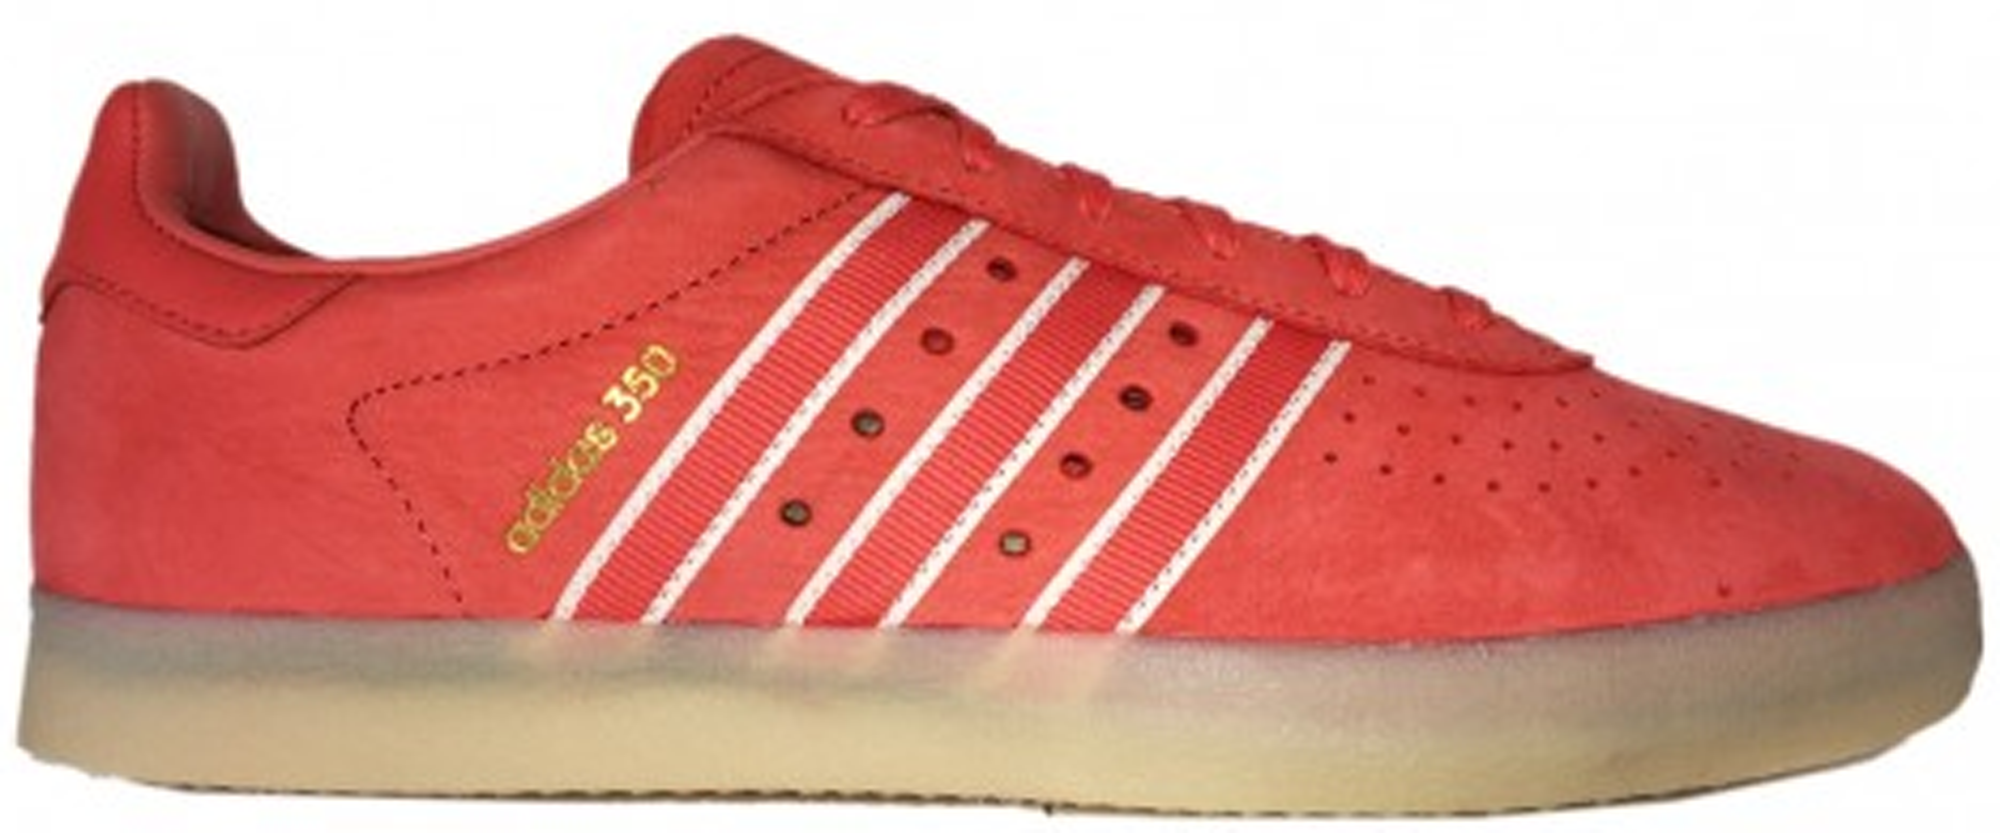 adidas 350 Oyster Holdings Trace Scarlet